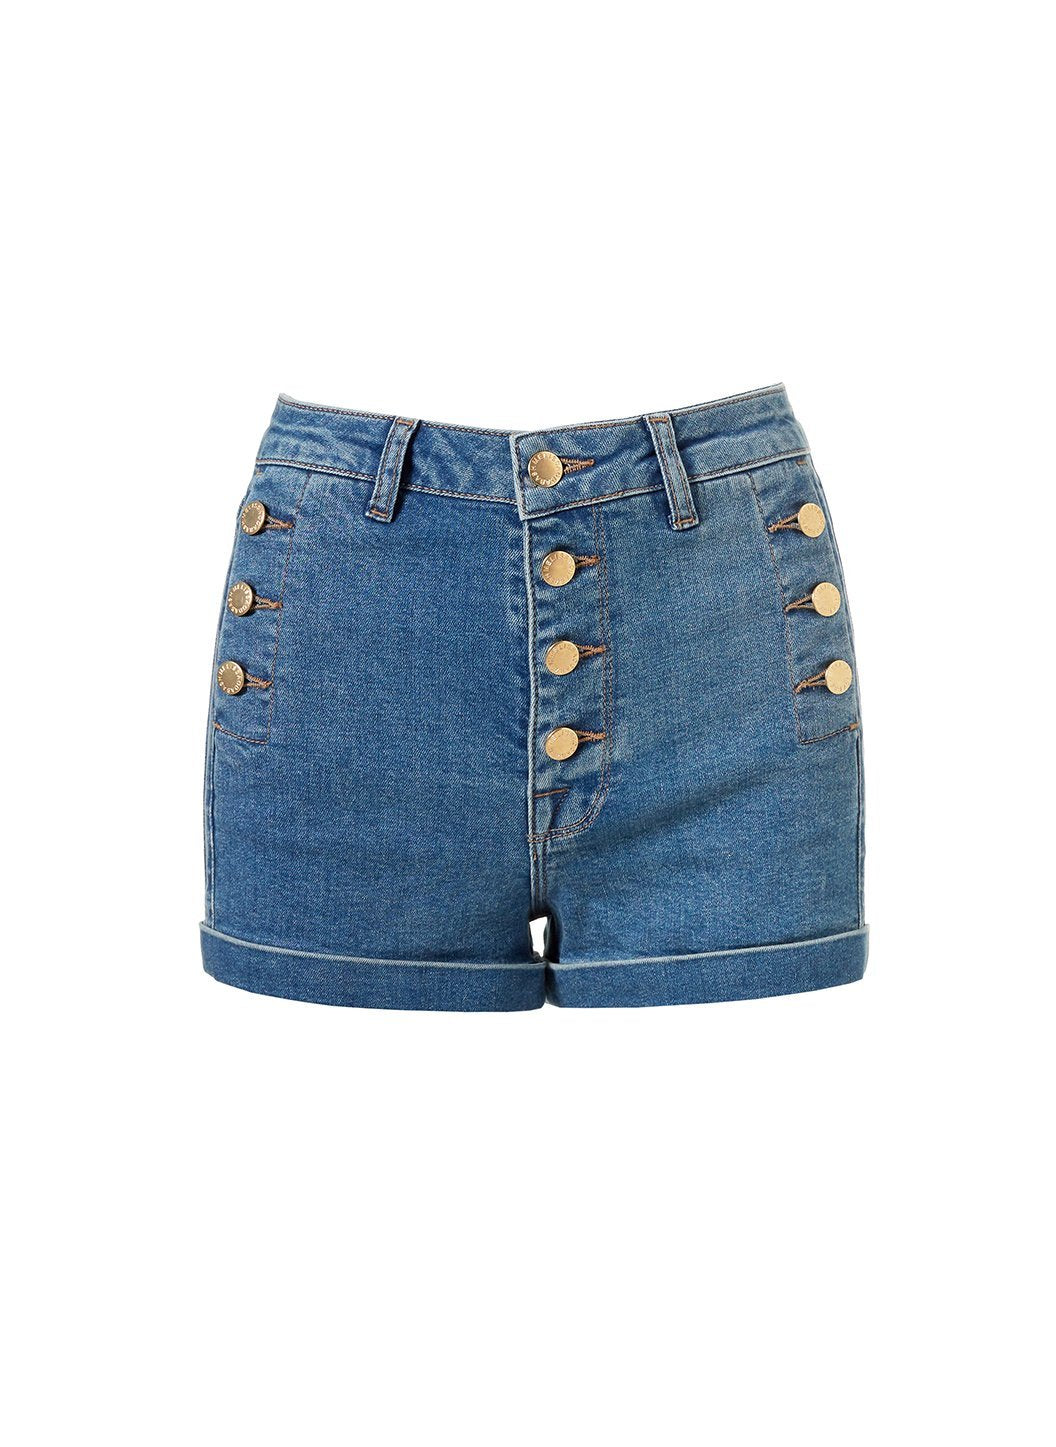 Yanni Denim Shorts